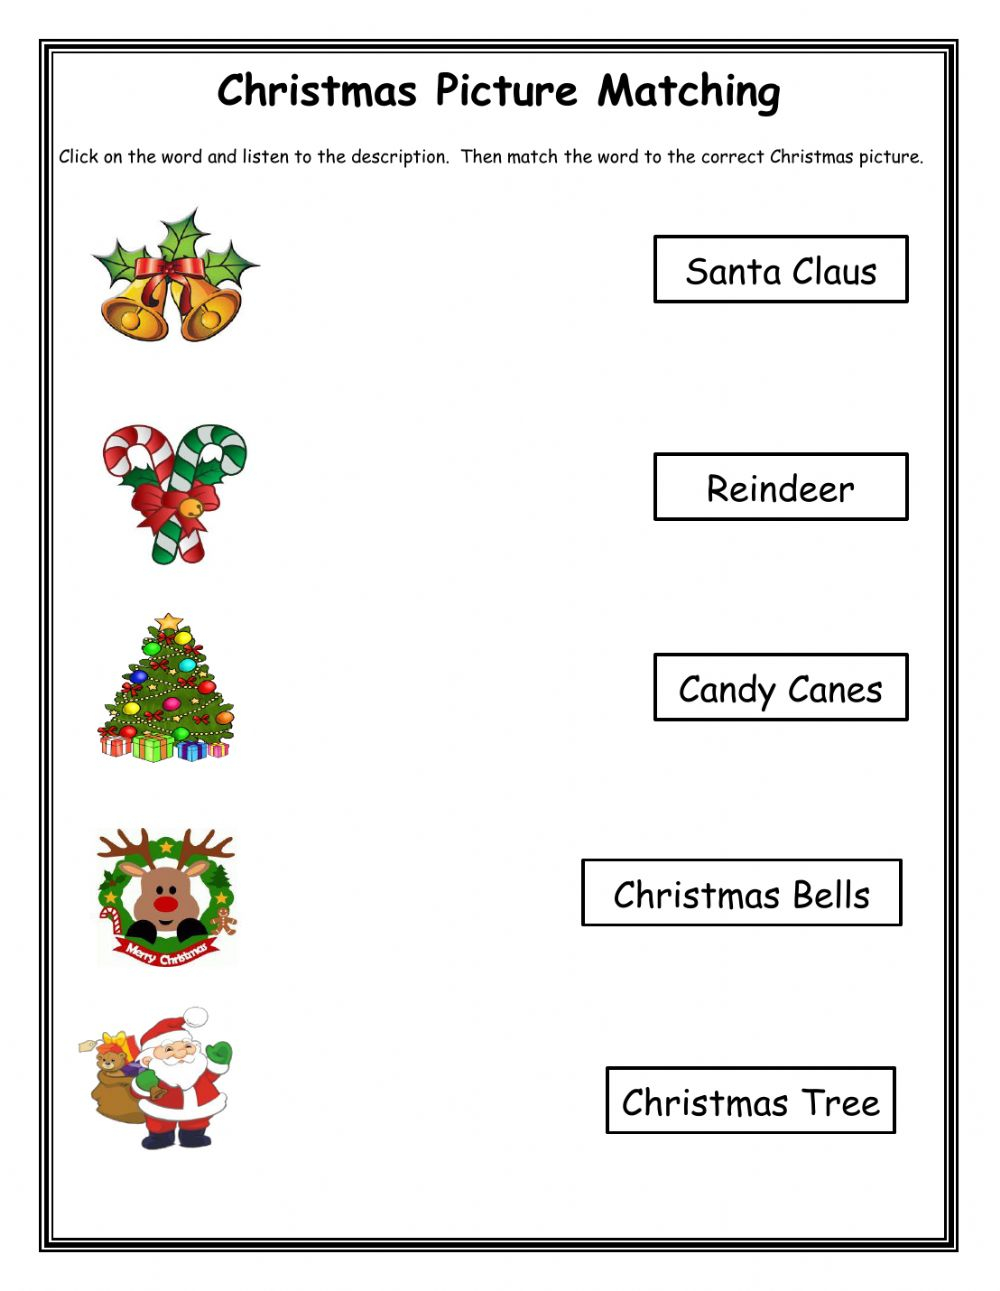 Christmas Matching 2 Worksheet